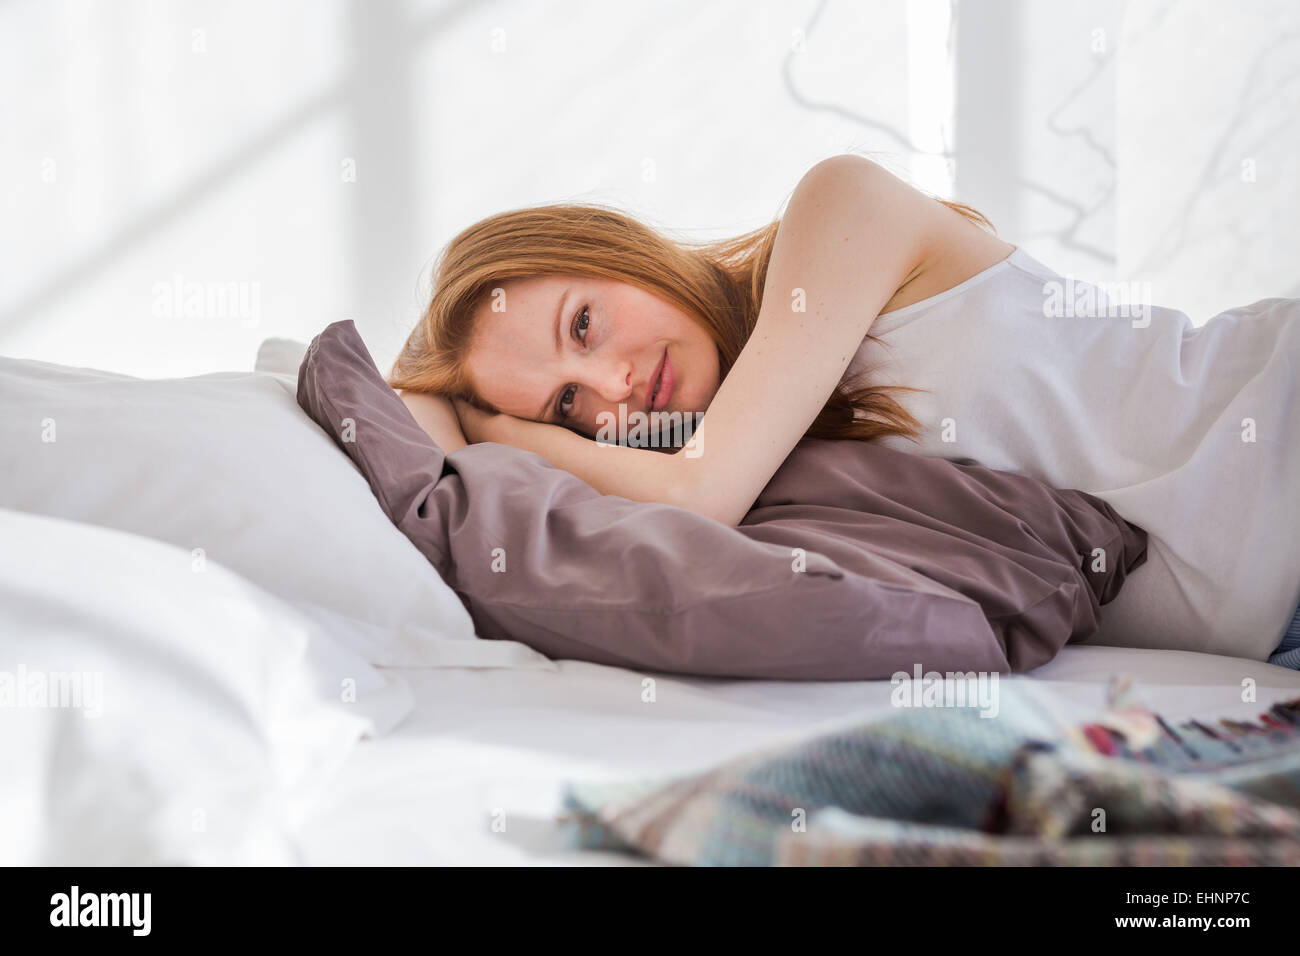 Woman resting bed. - Stock Image